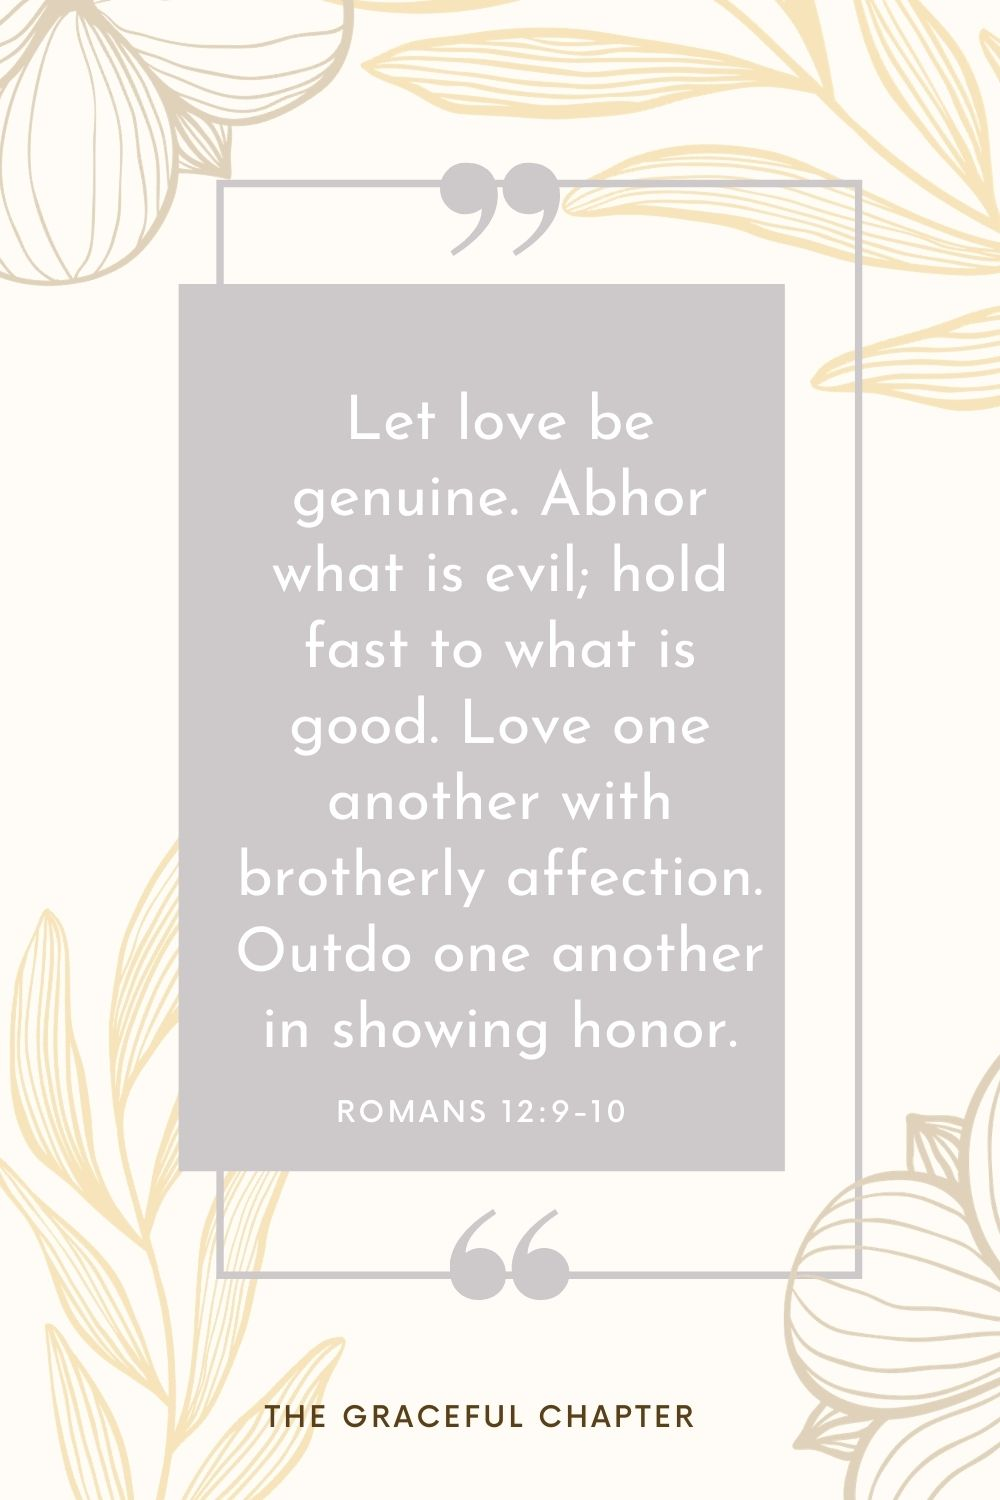 Let love be genuine. Abhor what is evil; hold fast to what is good. Love one another with brotherly affection. Outdo one another in showing honor. Romans 12:9-10